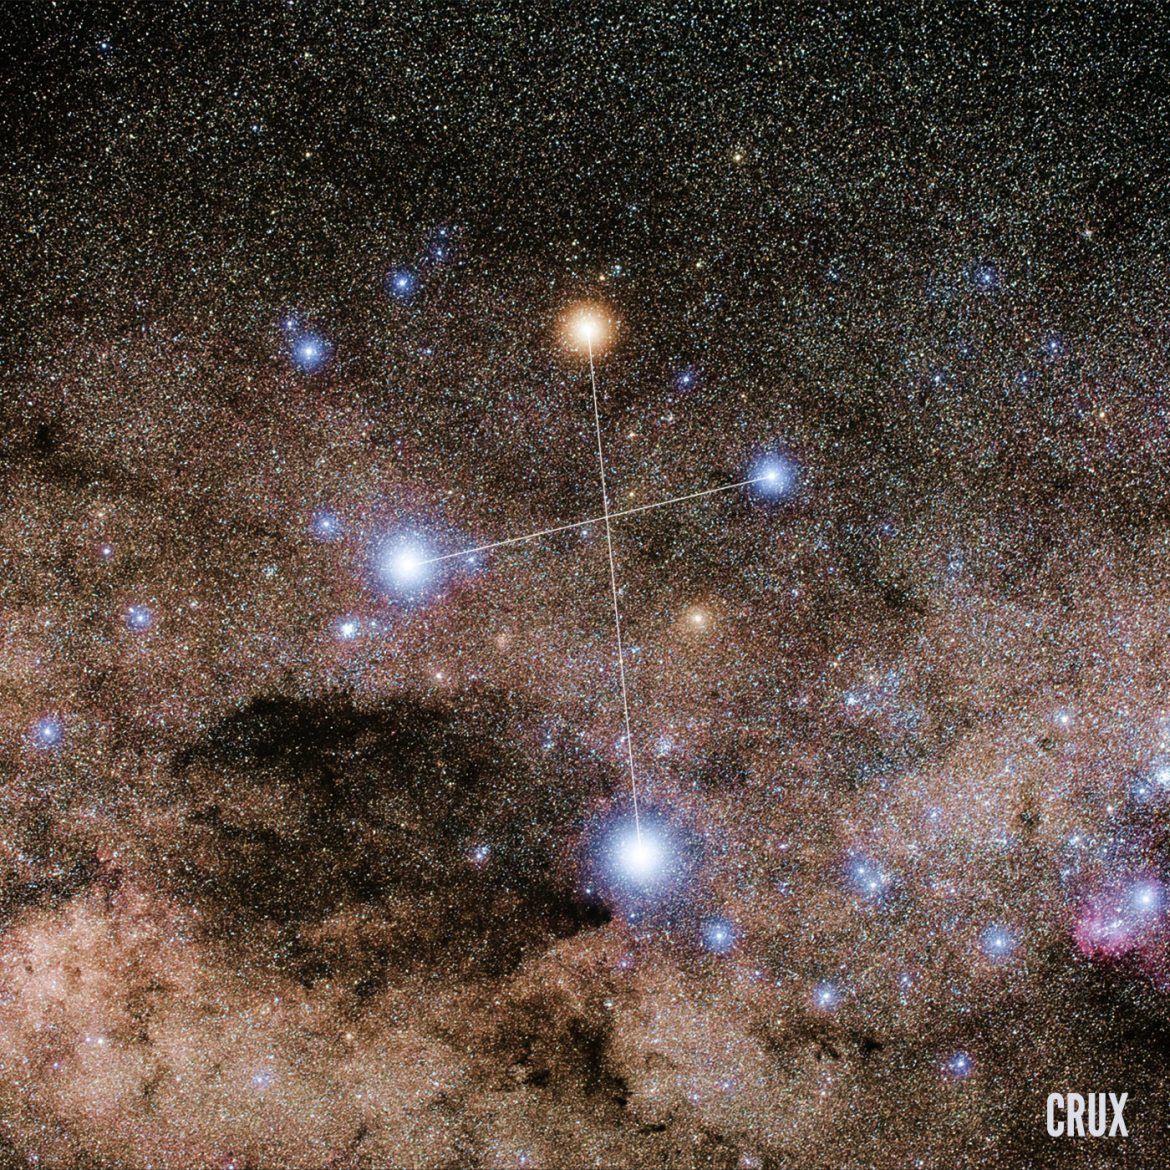 La constellation de la croix